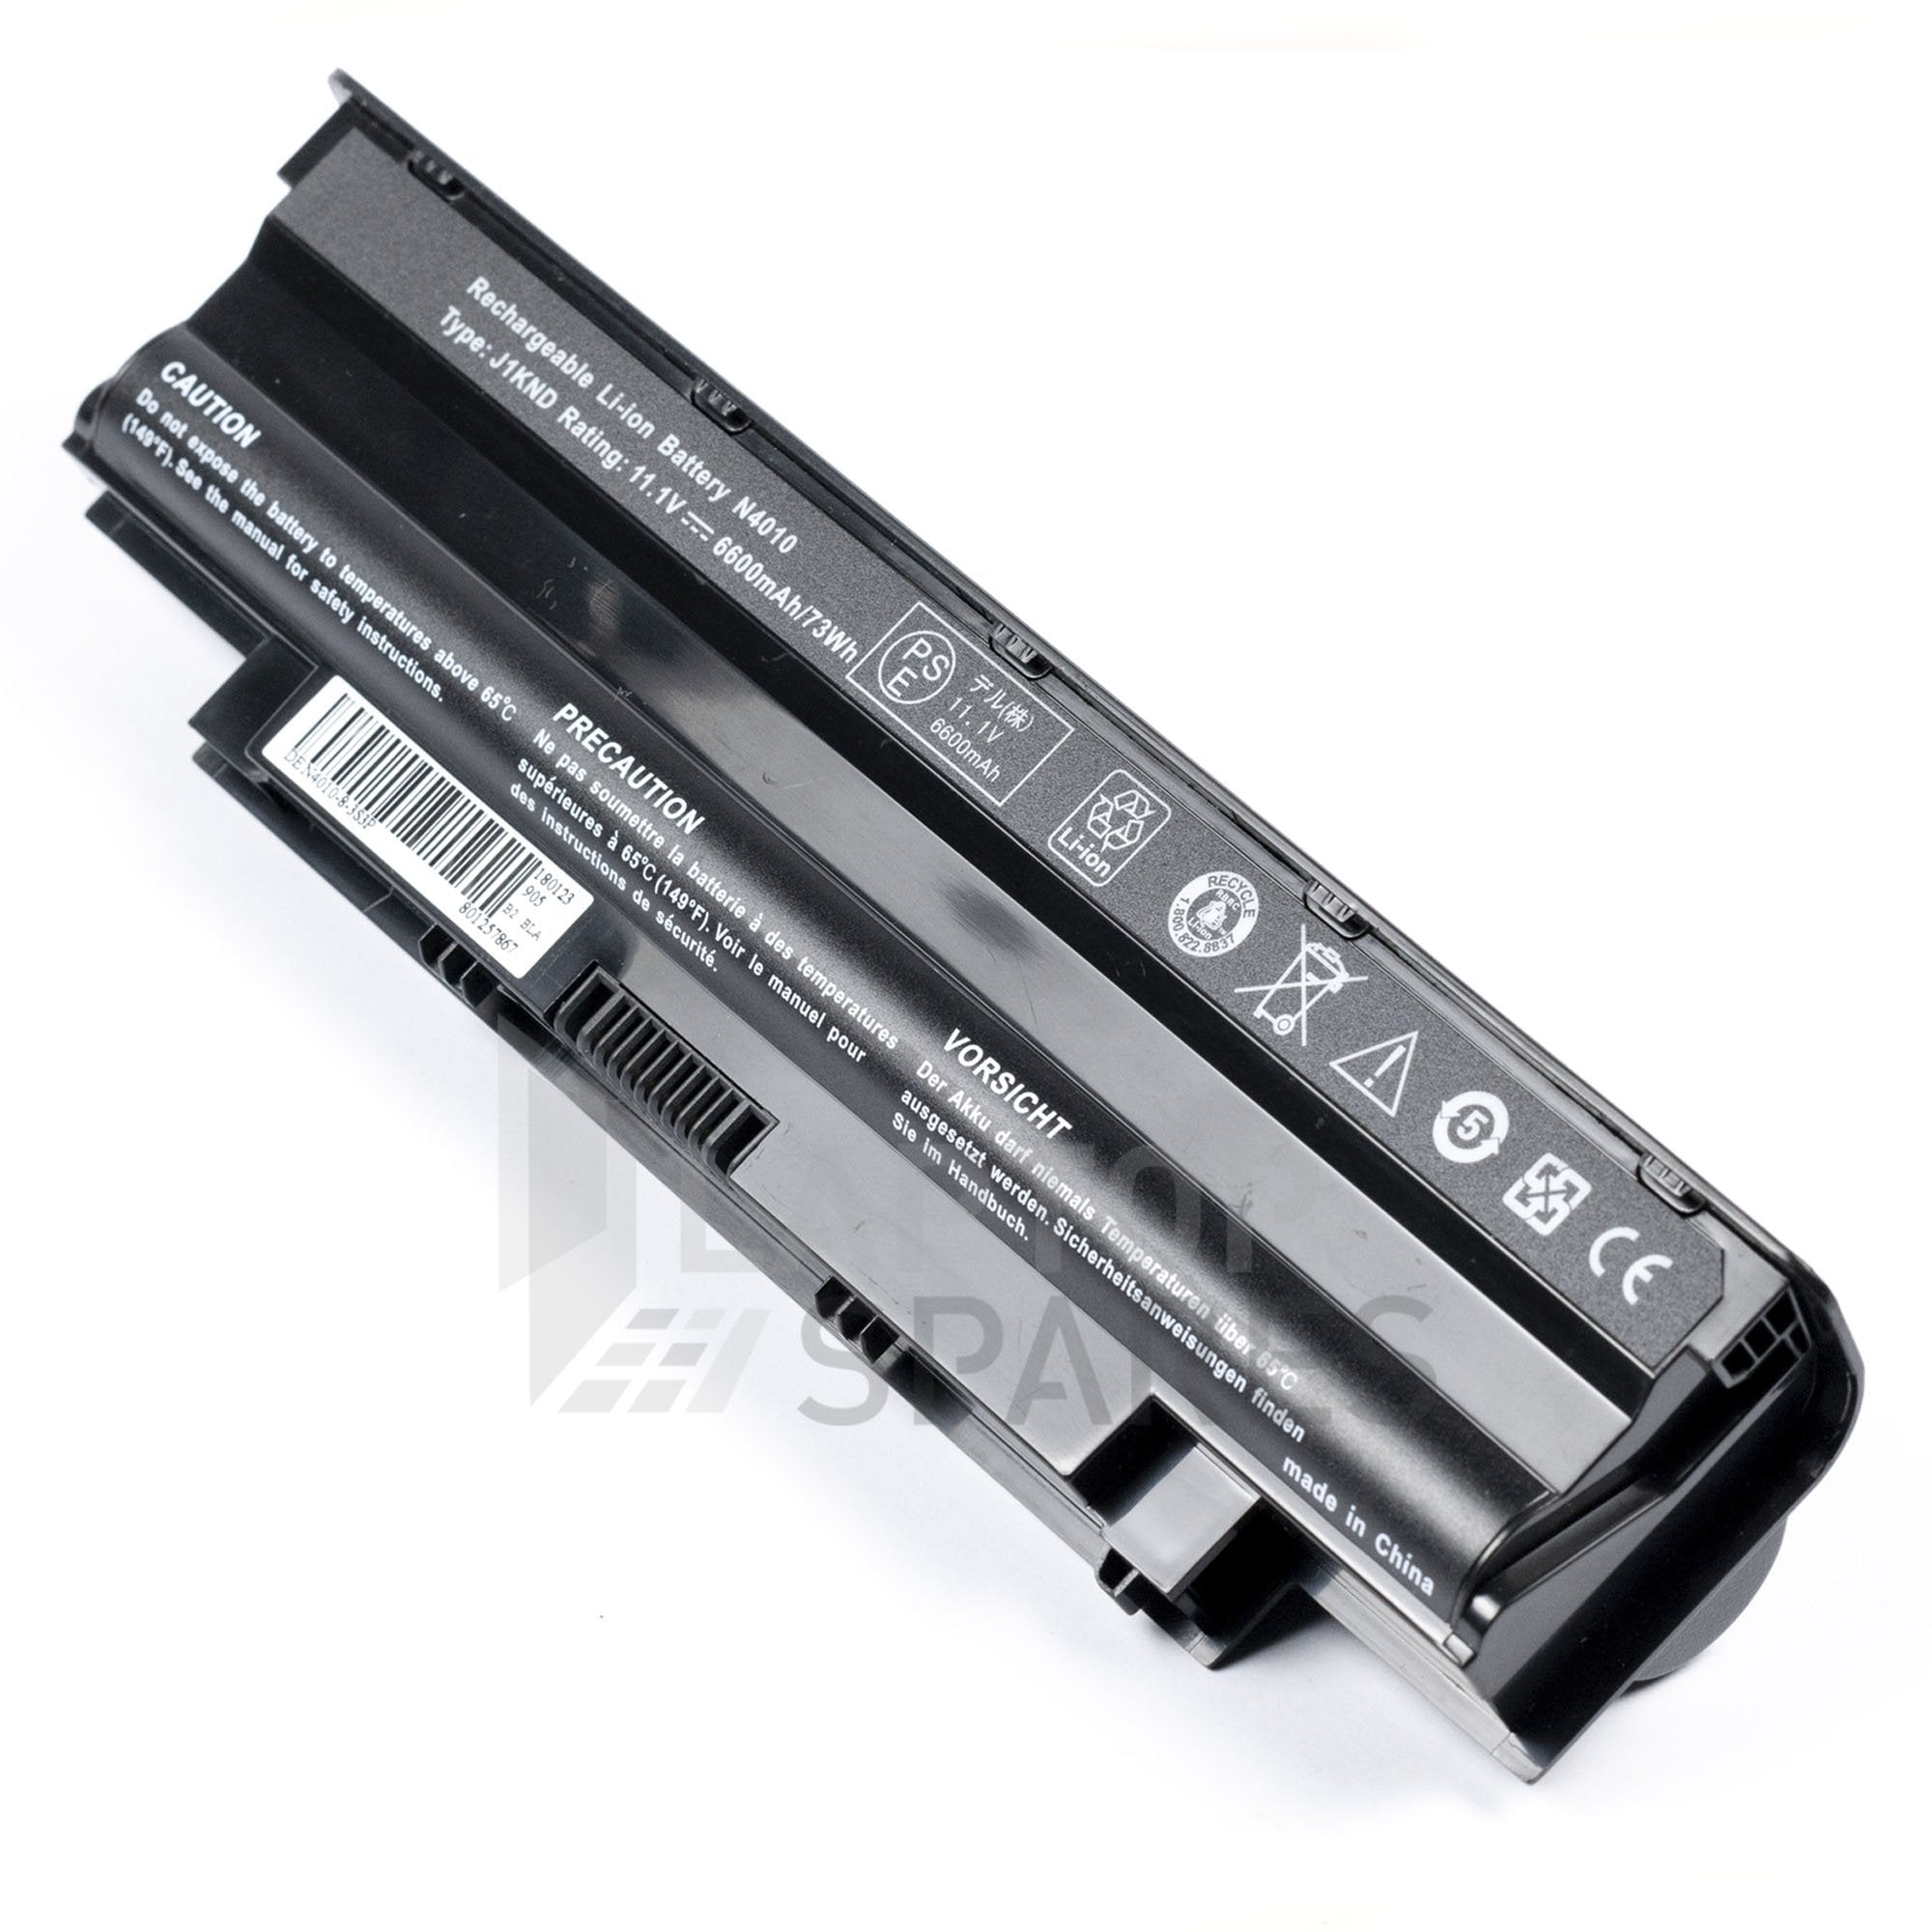 Dell Inspiron 15R N5010D-278 6600mAh 9 Cell Battery